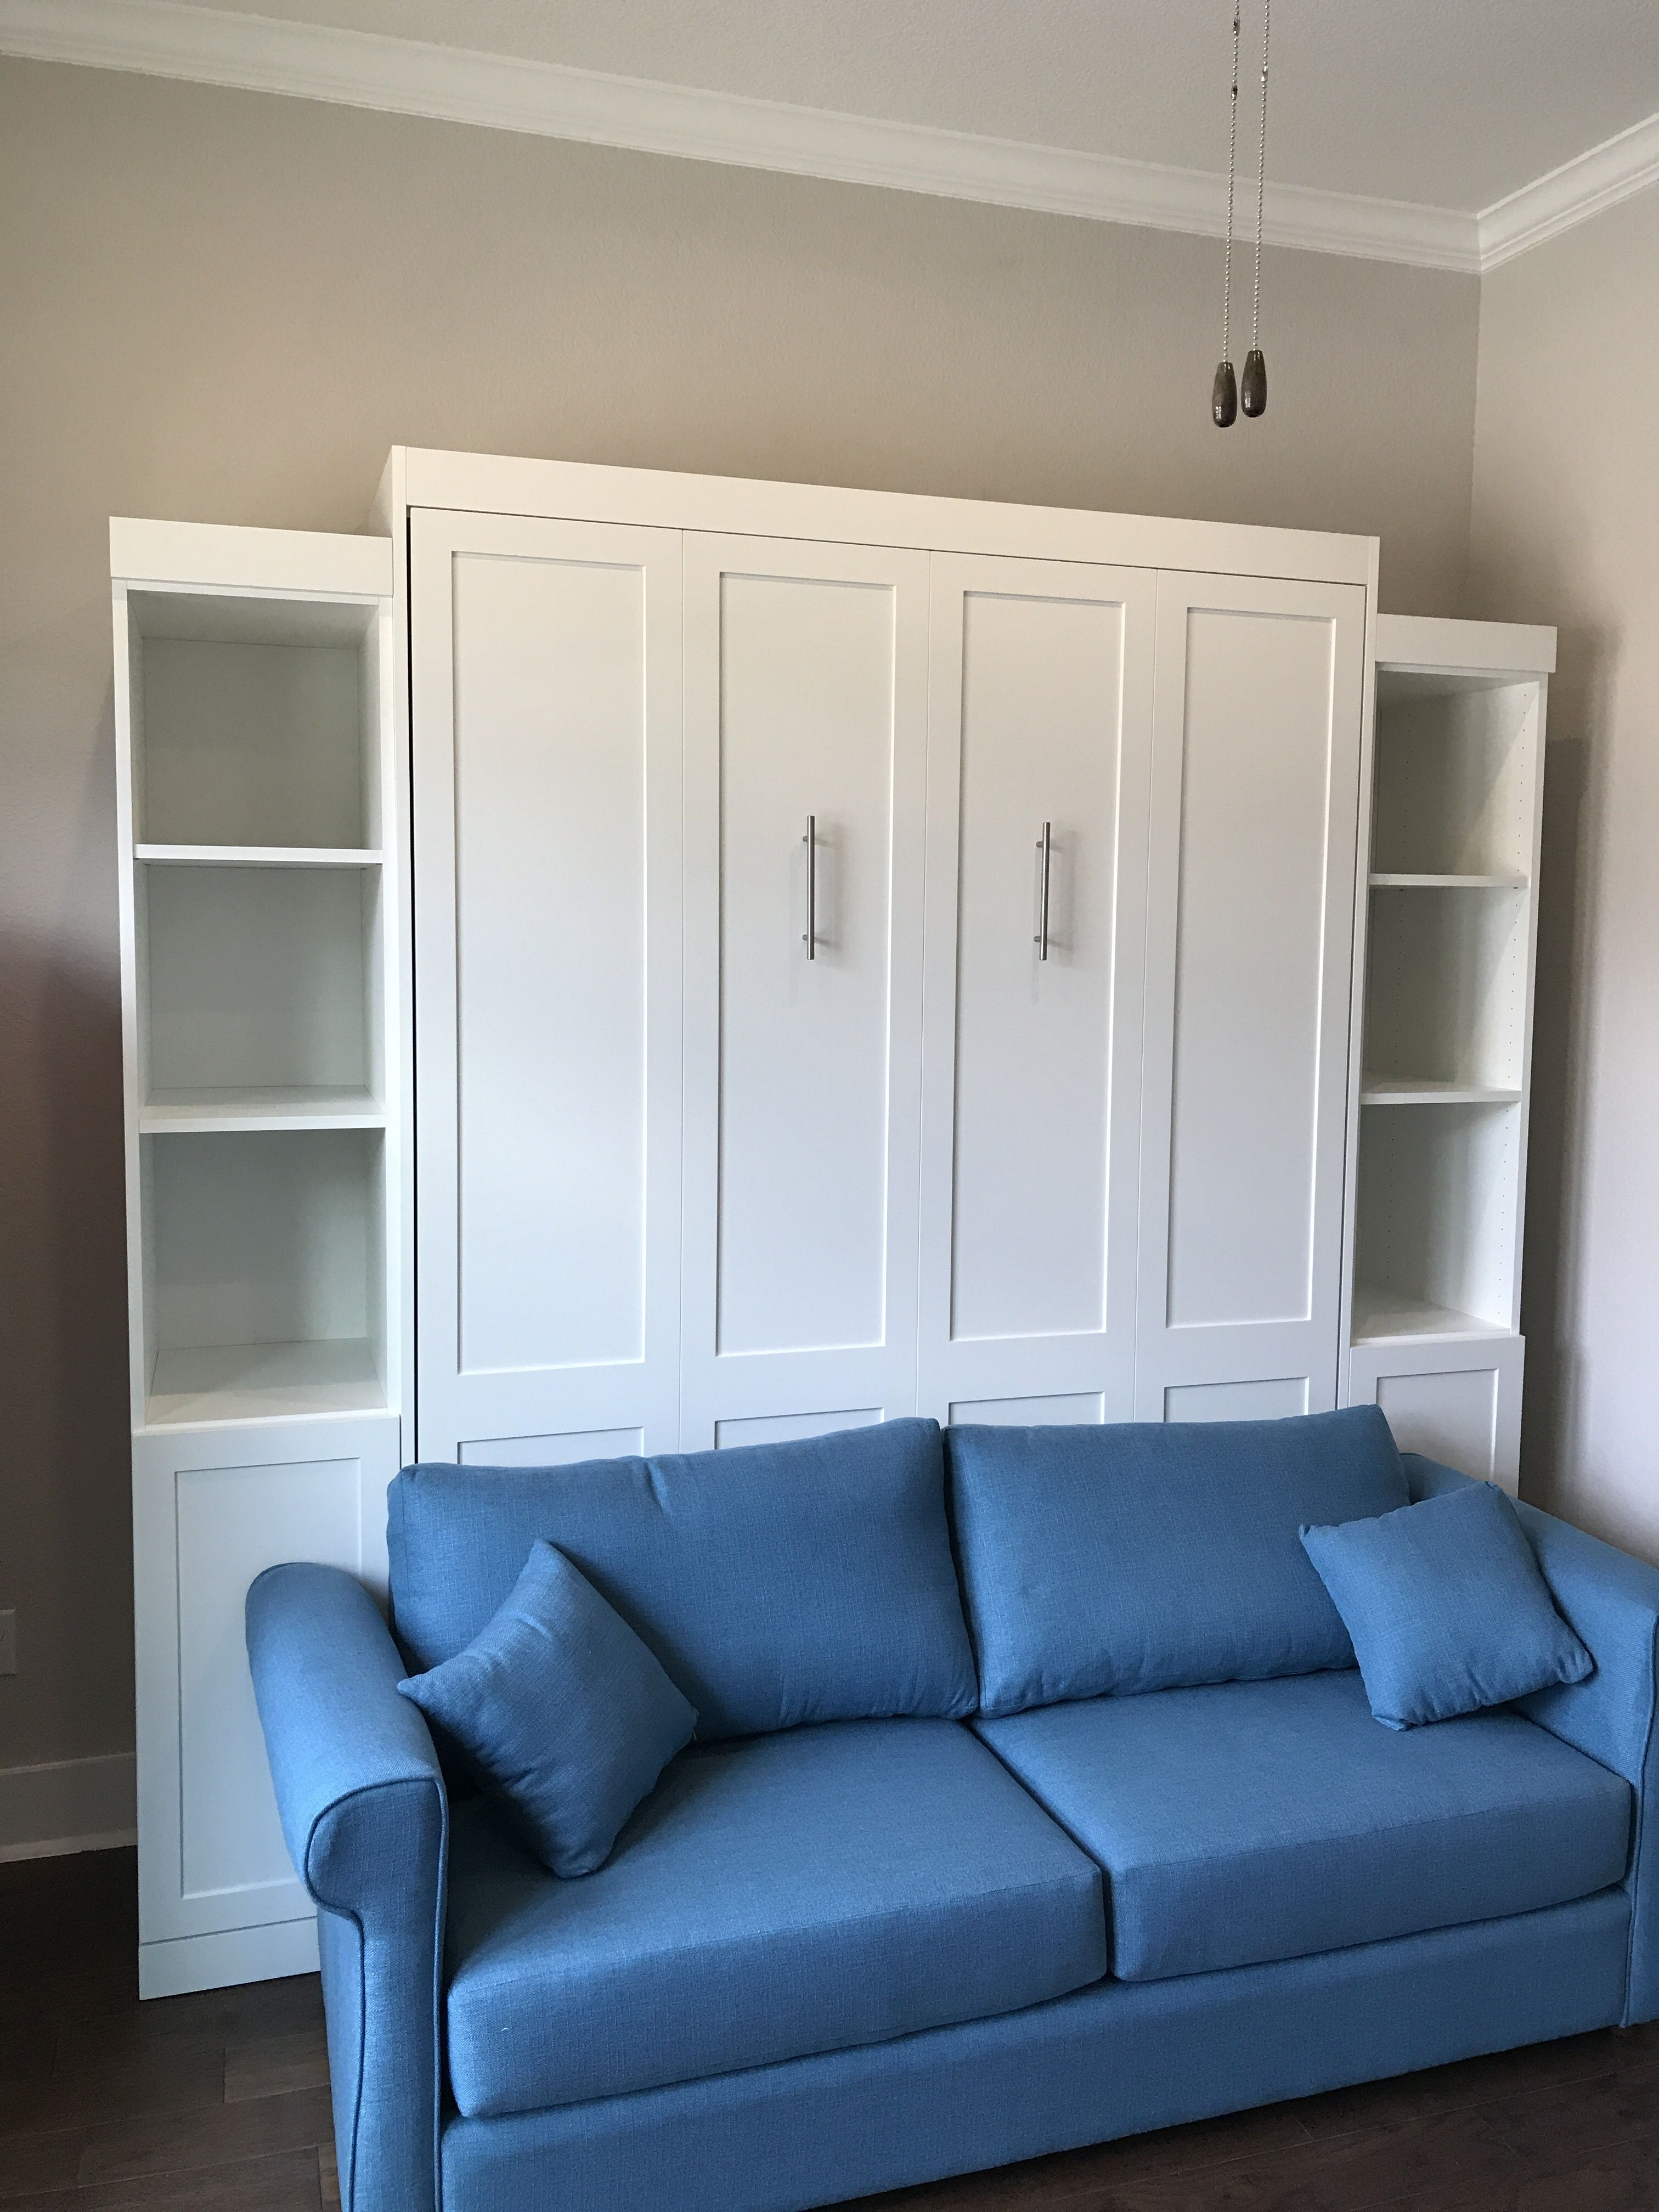 Peachy White Shaker Panel Bed Murphy Bed With Couch Murphy Beds Creativecarmelina Interior Chair Design Creativecarmelinacom